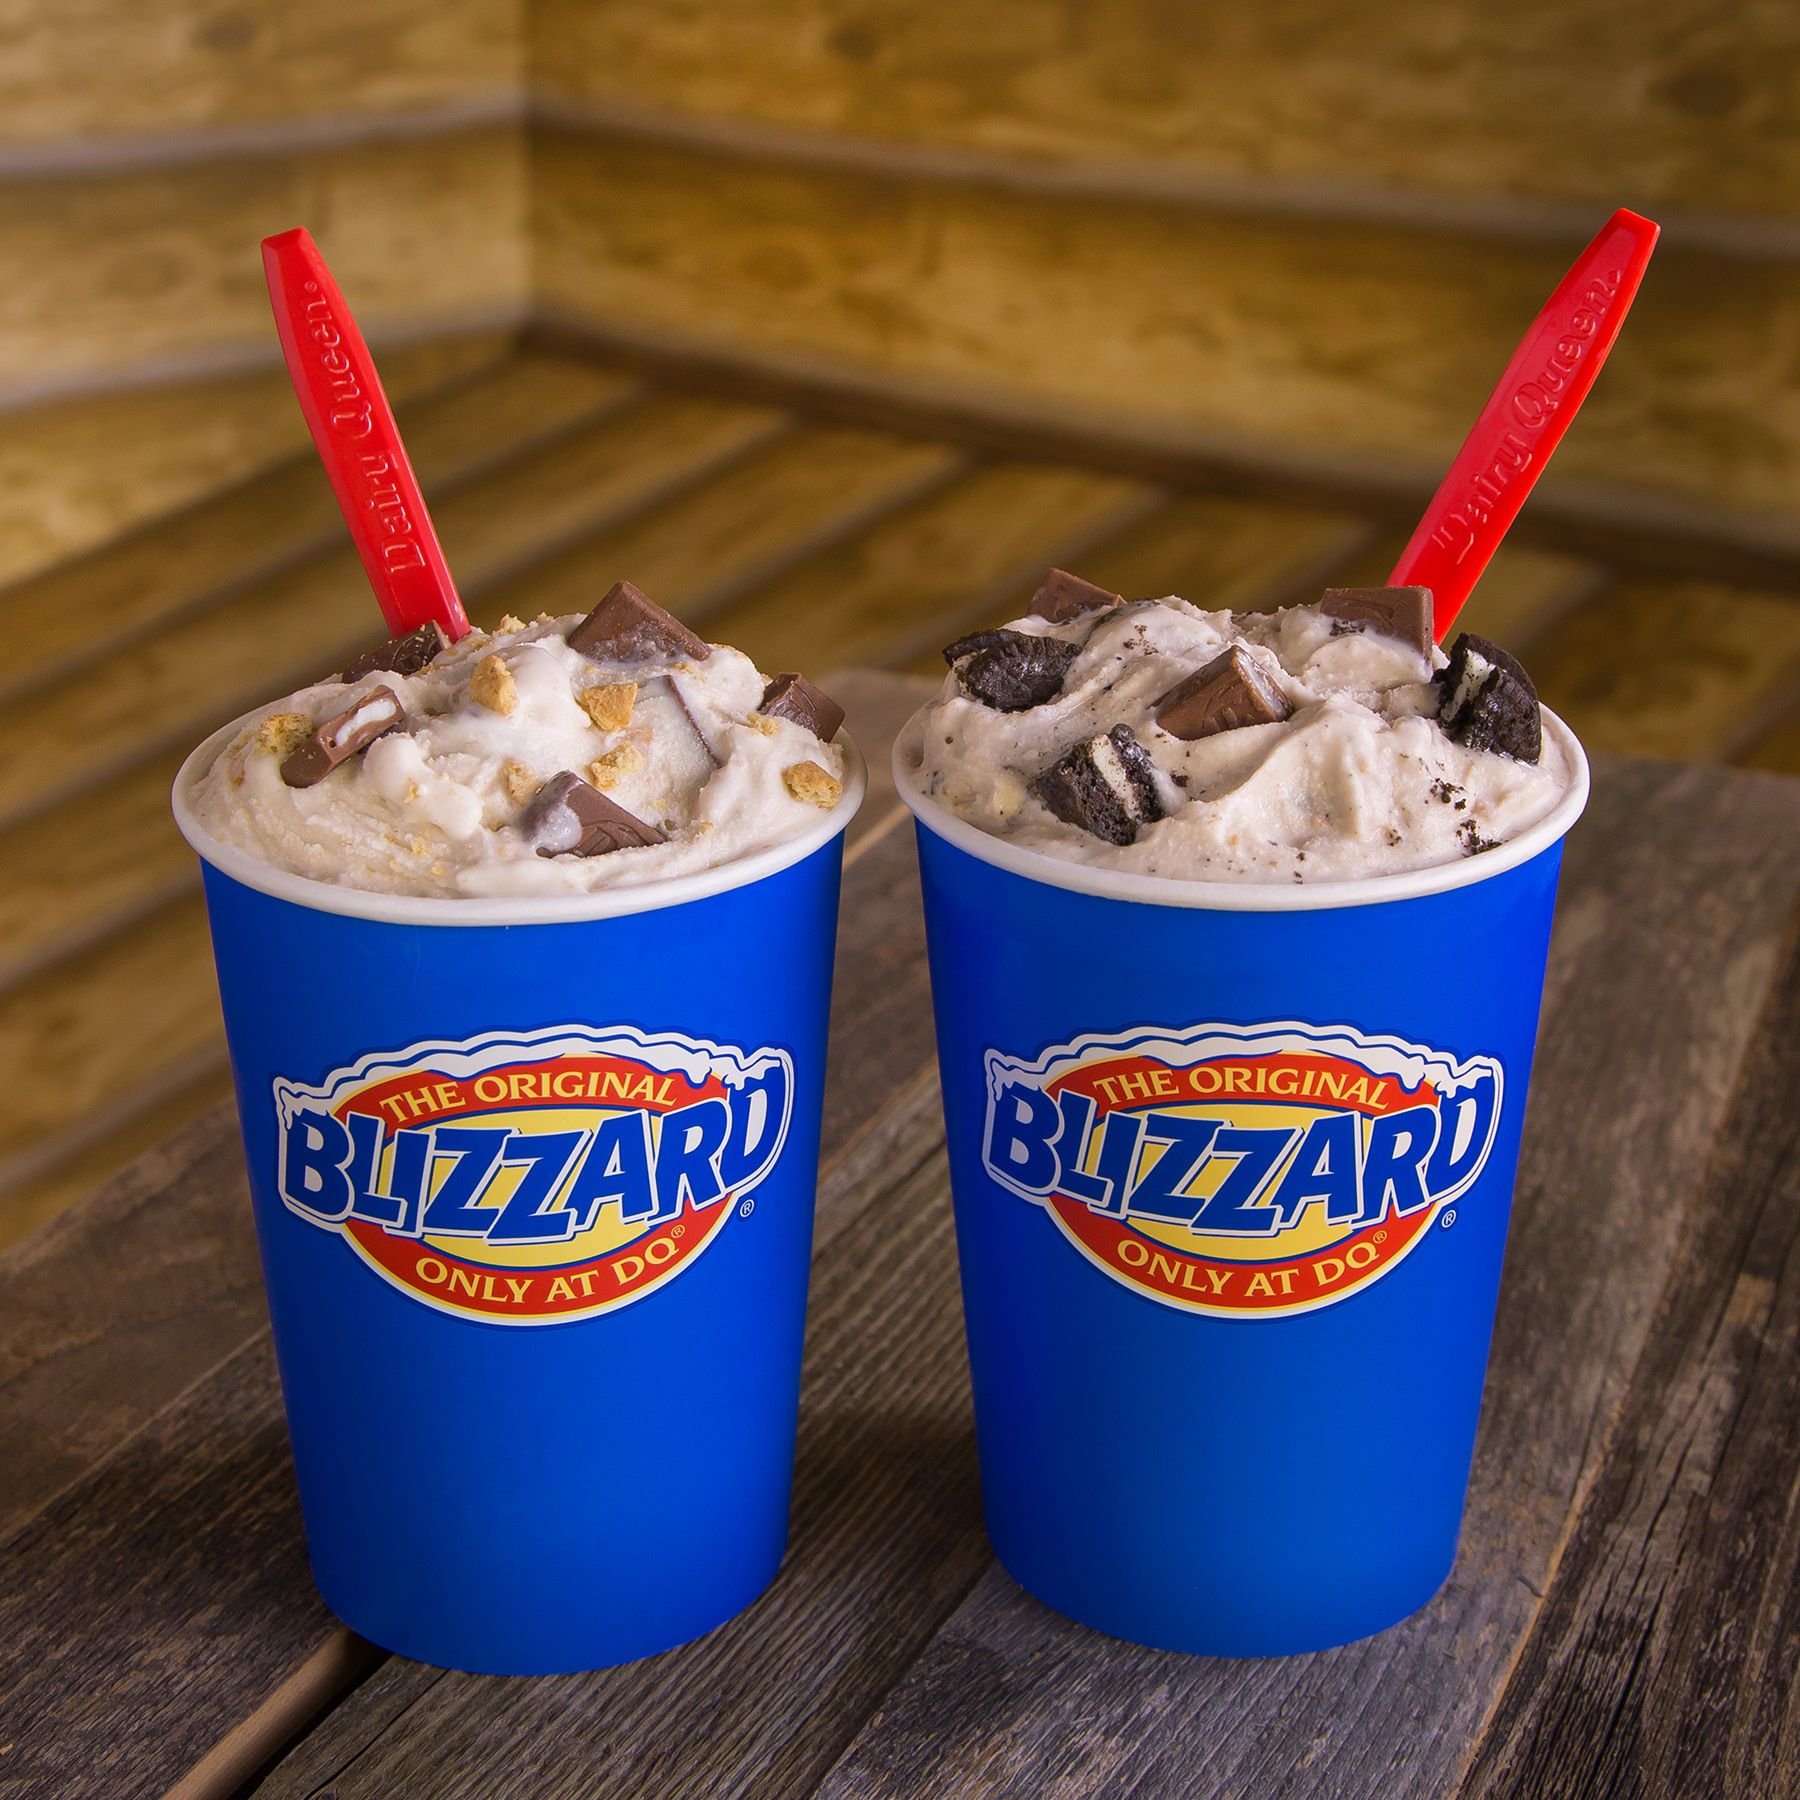 Dairy Queen Canada Promo: Buy One Get One Blizzard for 99 Cents